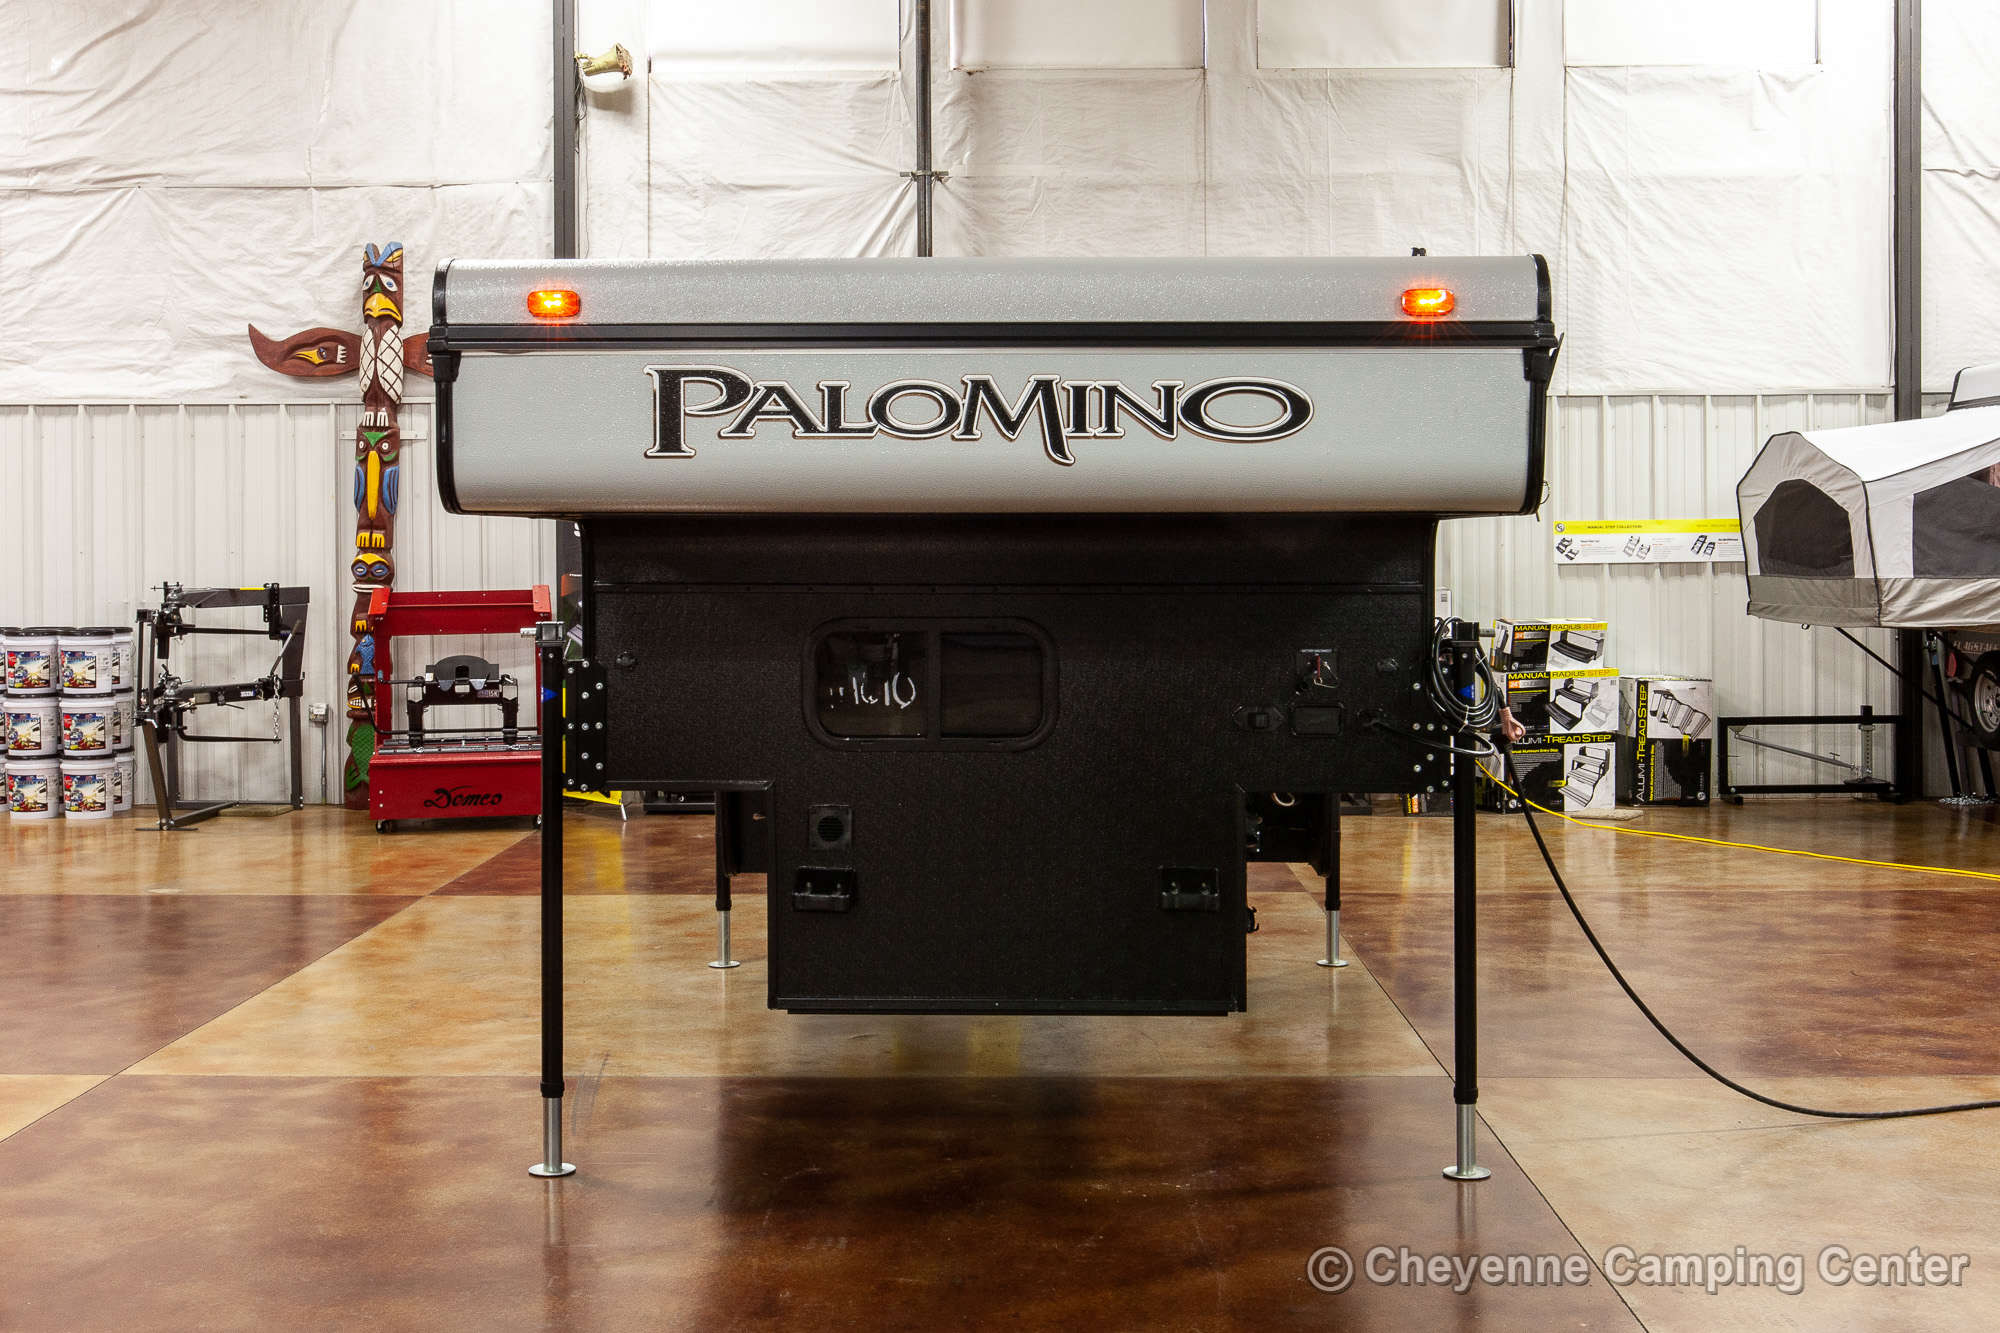 2021 Palomino BackPack SS-1500 Truck Camper Exterior Image